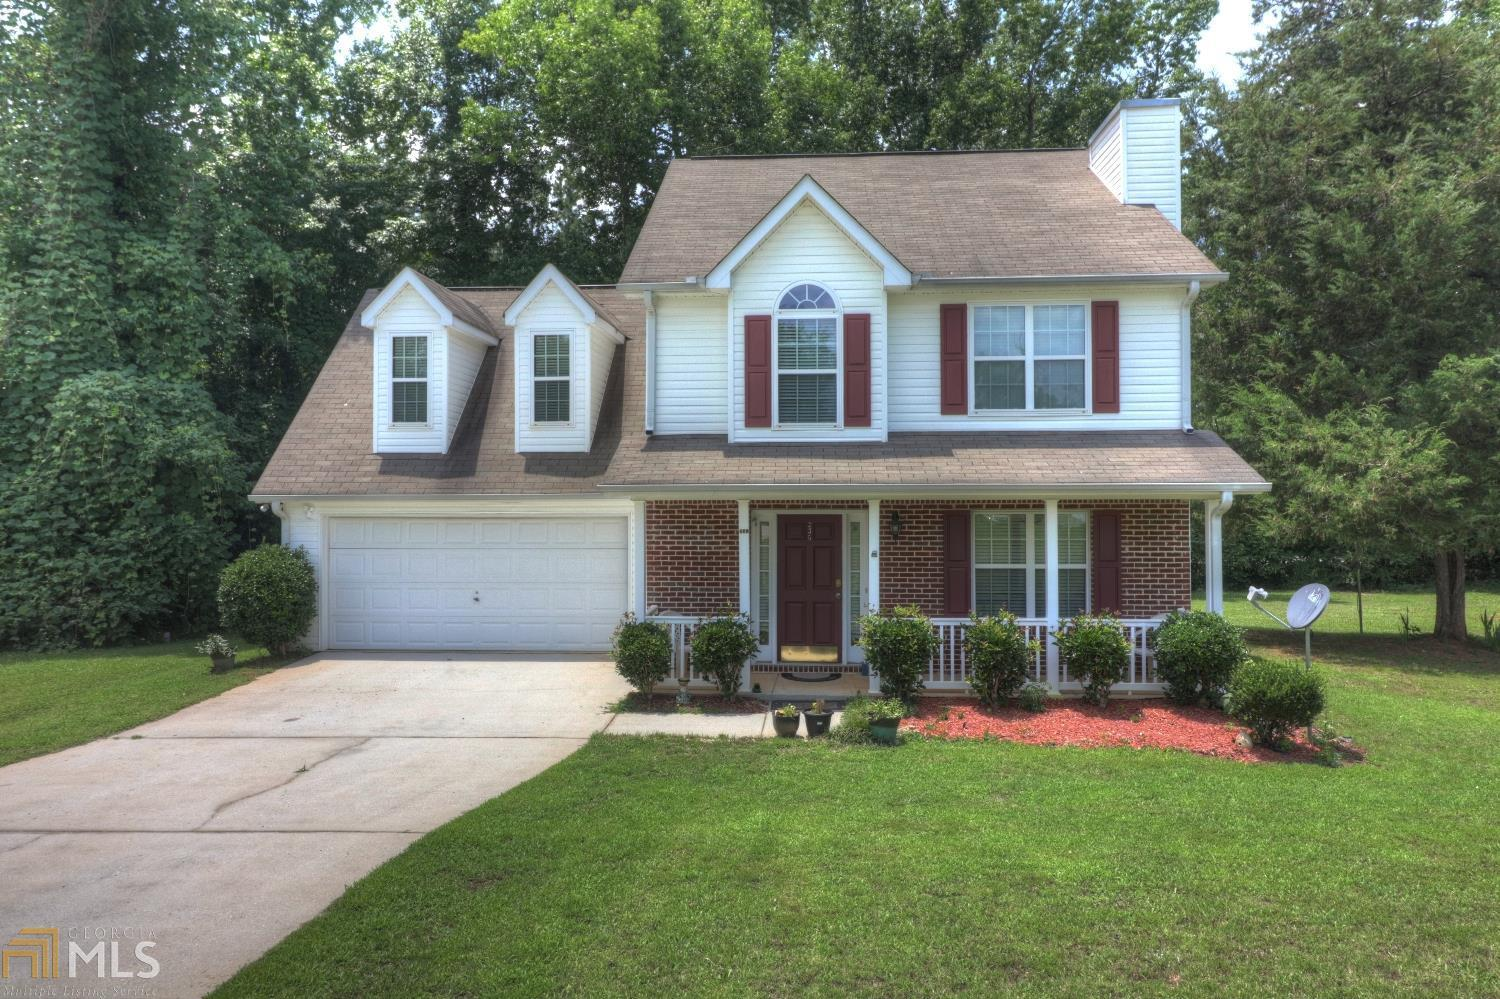 235 Autumn Ridge Dr, Griffin, GA 30224 (MLS #8545482) :: Royal T Realty, Inc.